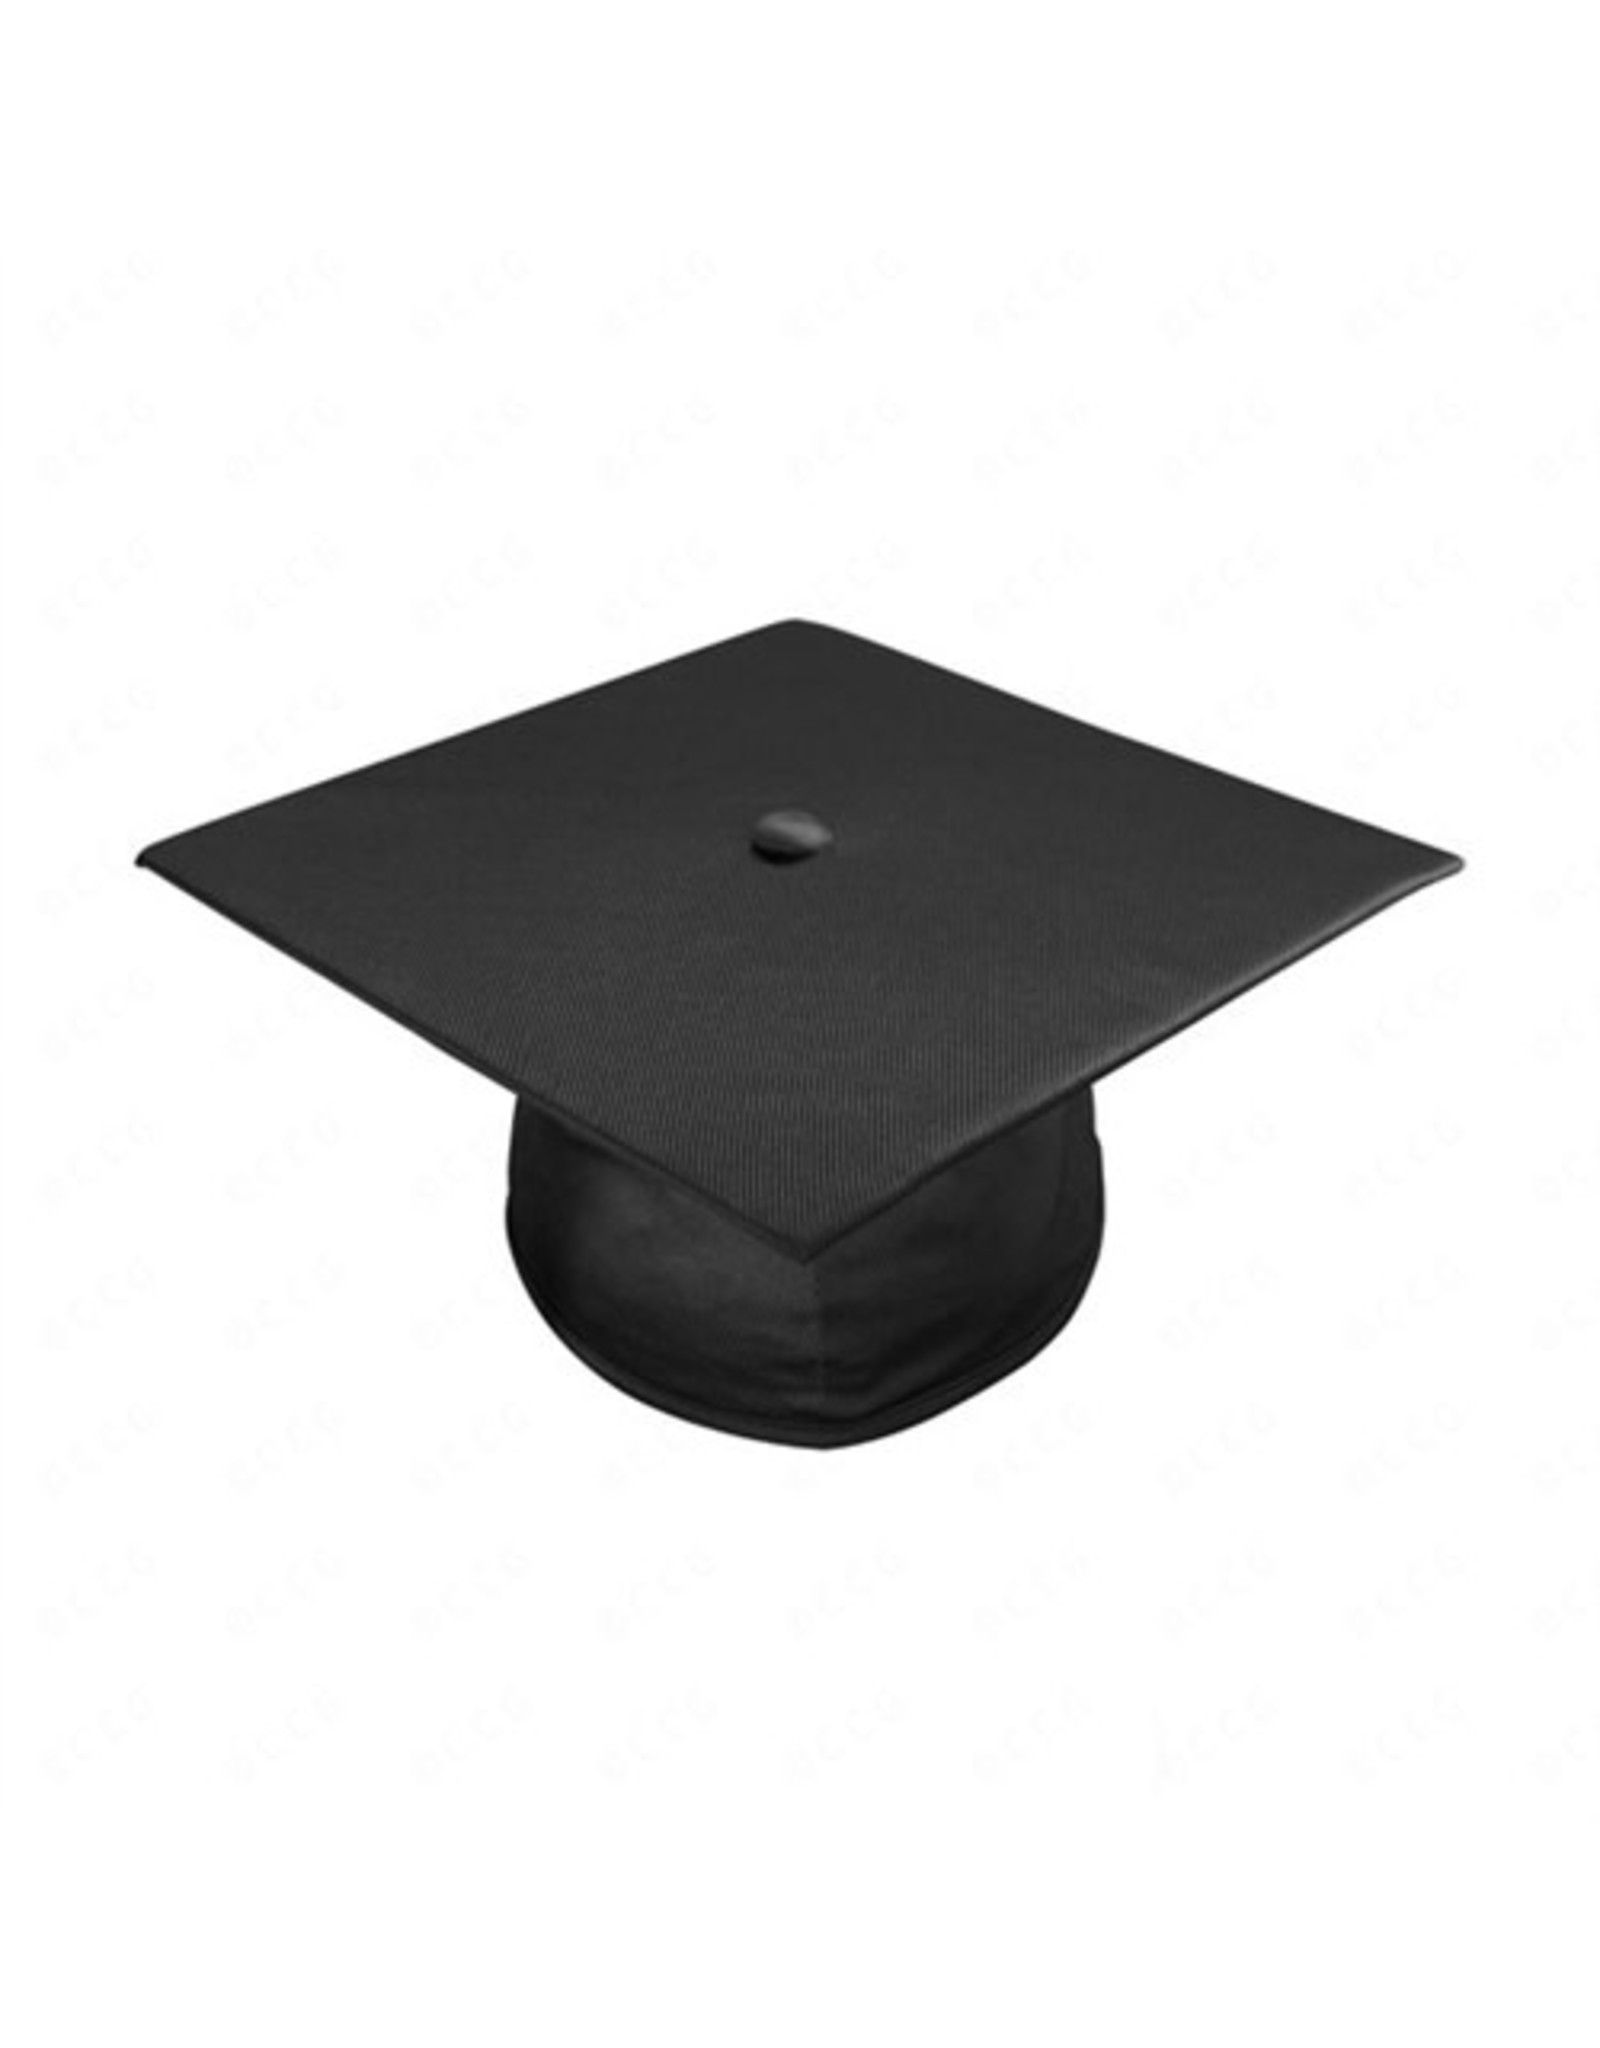 Canadian Caps and Gowns Black Graduation Cap with 2021 Tassle